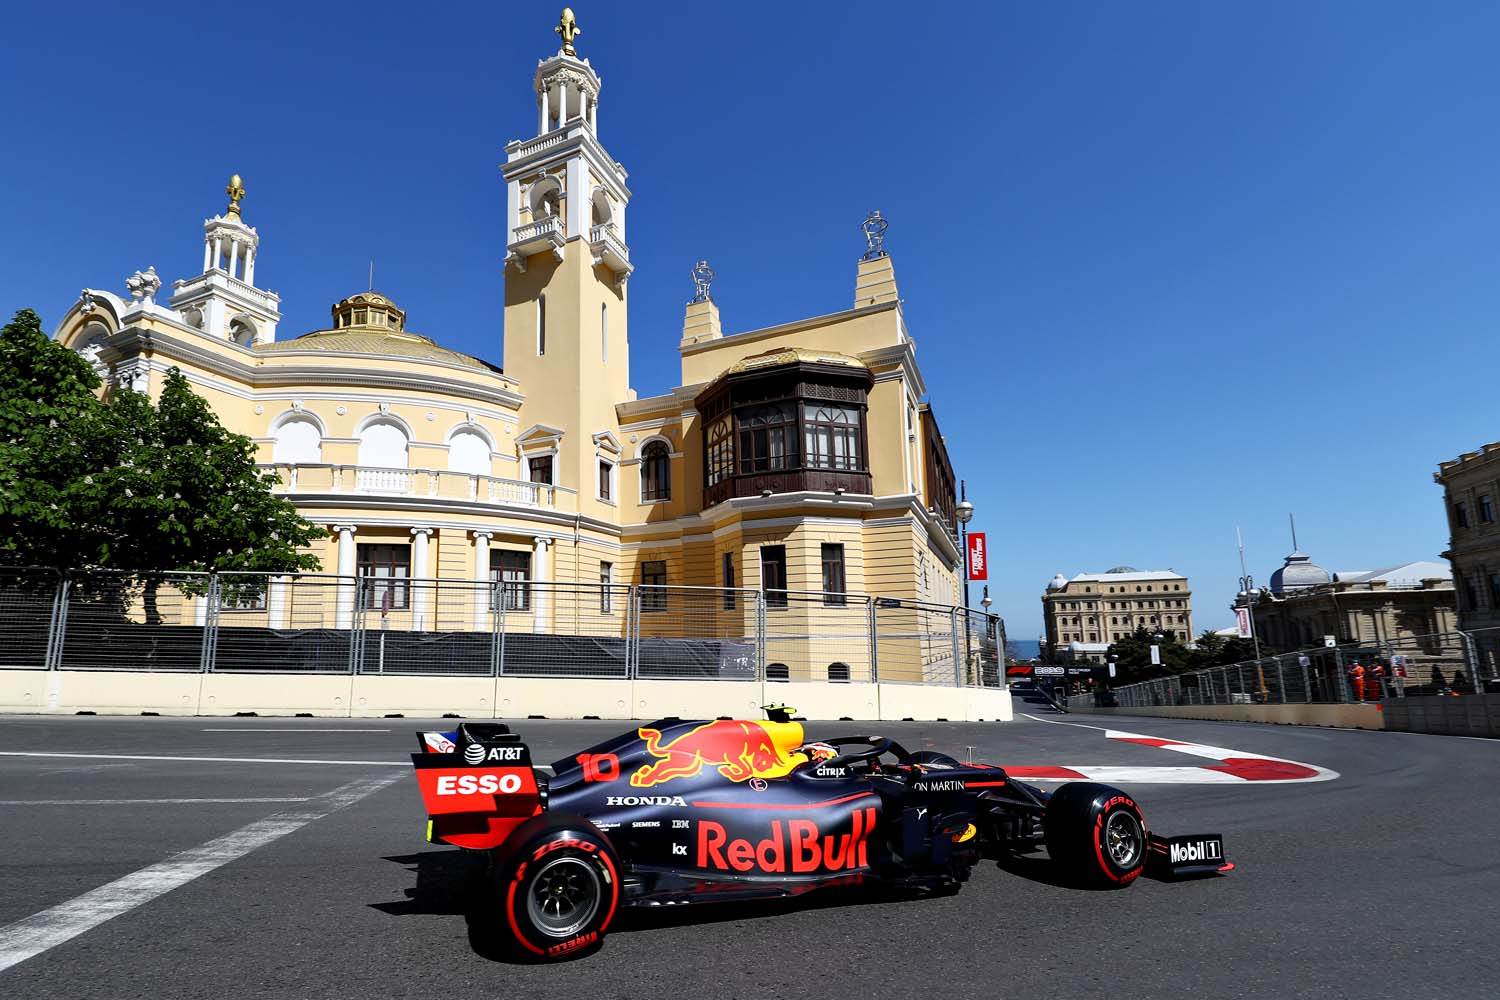 F1 Grand Prix of Azerbaijan - Final Practice